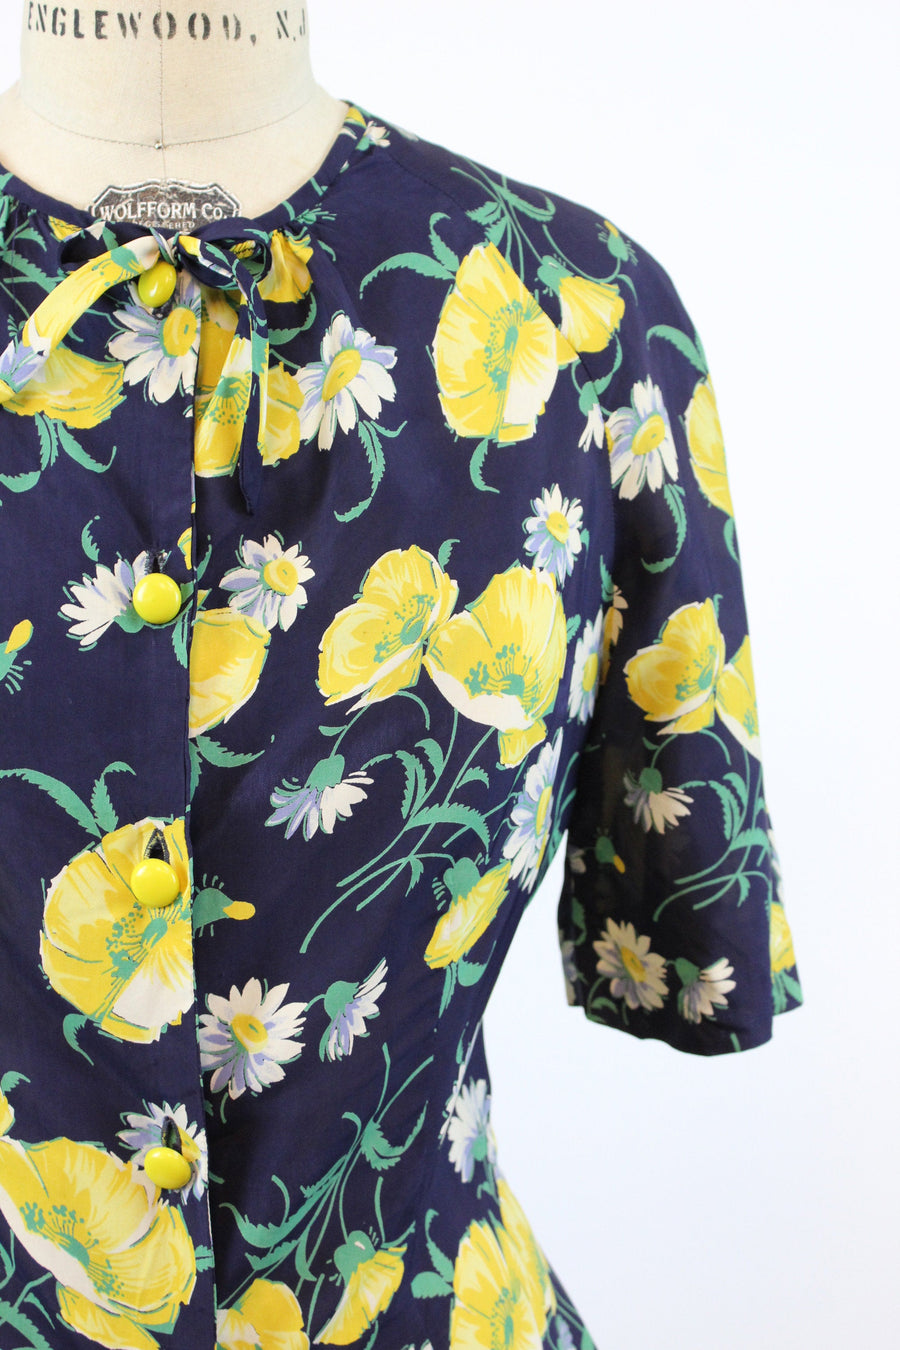 1940s rayon blouse small | vintage button up floral top